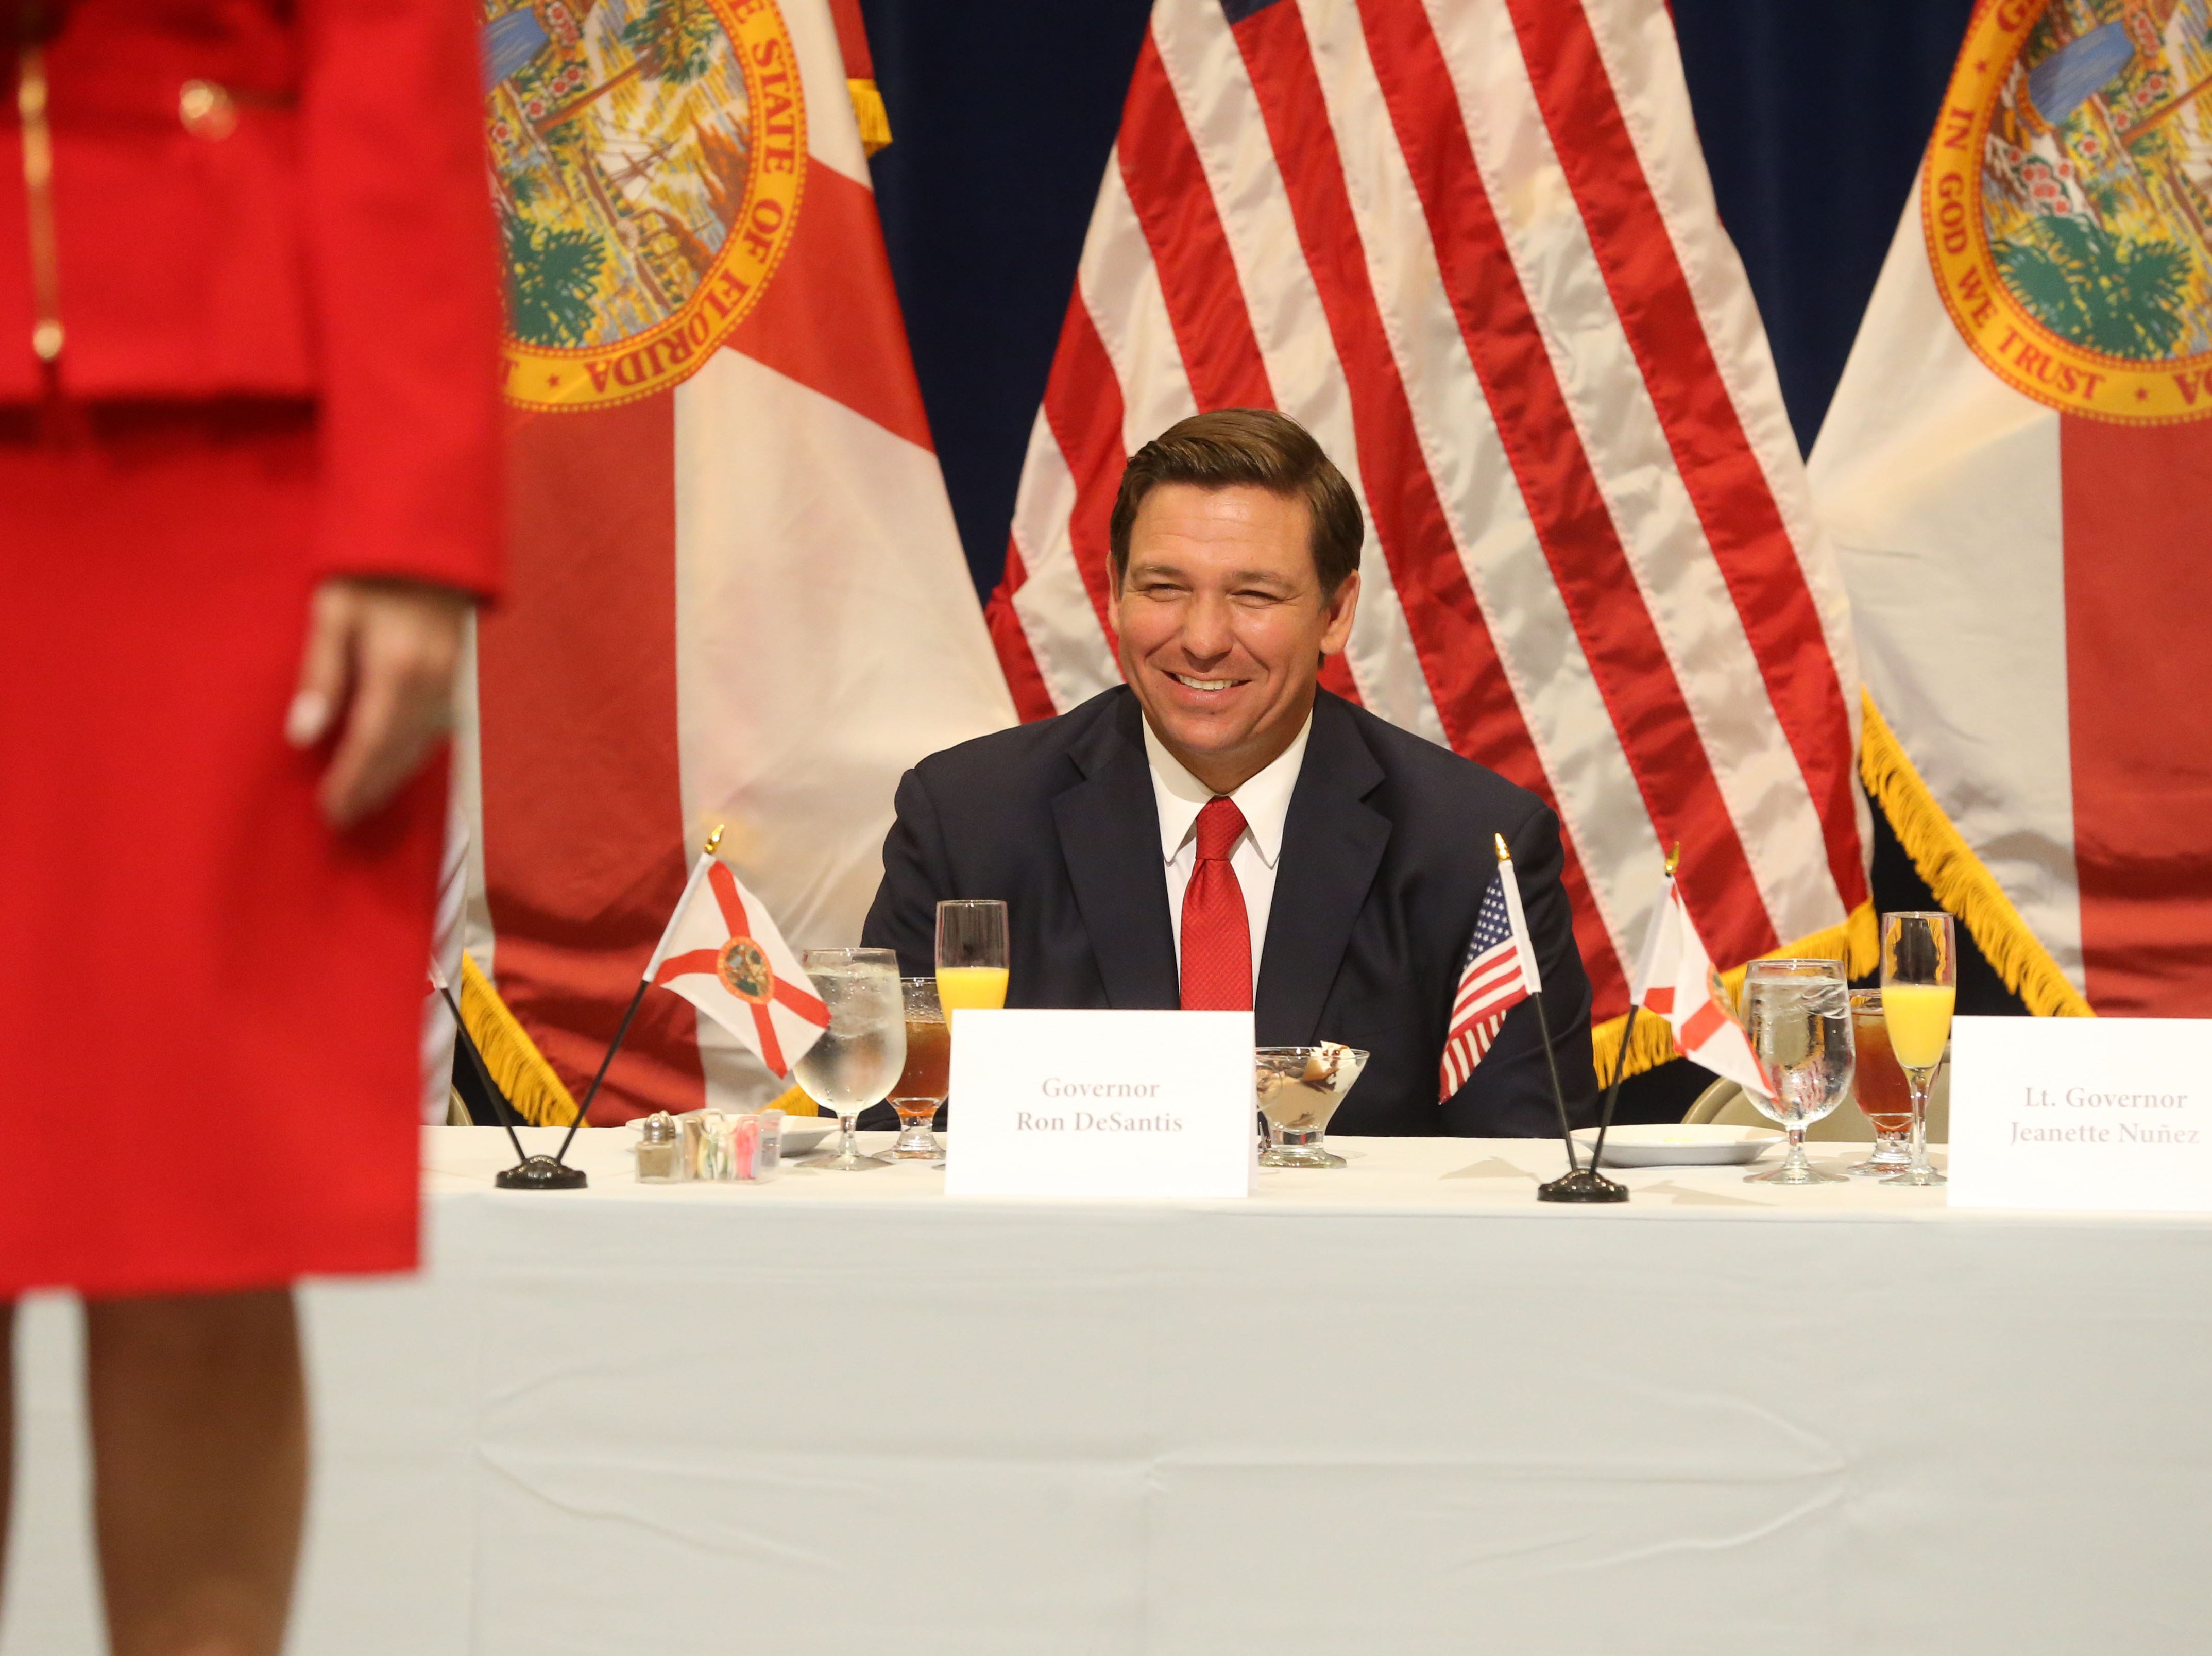 For the first time in Inaugural history, Gov. Ron DeSantis addresses FloridaÕs Legislative leaders and Cabinet officials. DeSantis discusses his plans to work with our stateÕs elected leaders to achieve a Bold Vision for a Brighter Future, Tuesday, Jan. 8, 2019. Gov. Ron DeSantis chuckles as he listens to Lt. Gov. Jeanette Nunez speak at the luncheon.